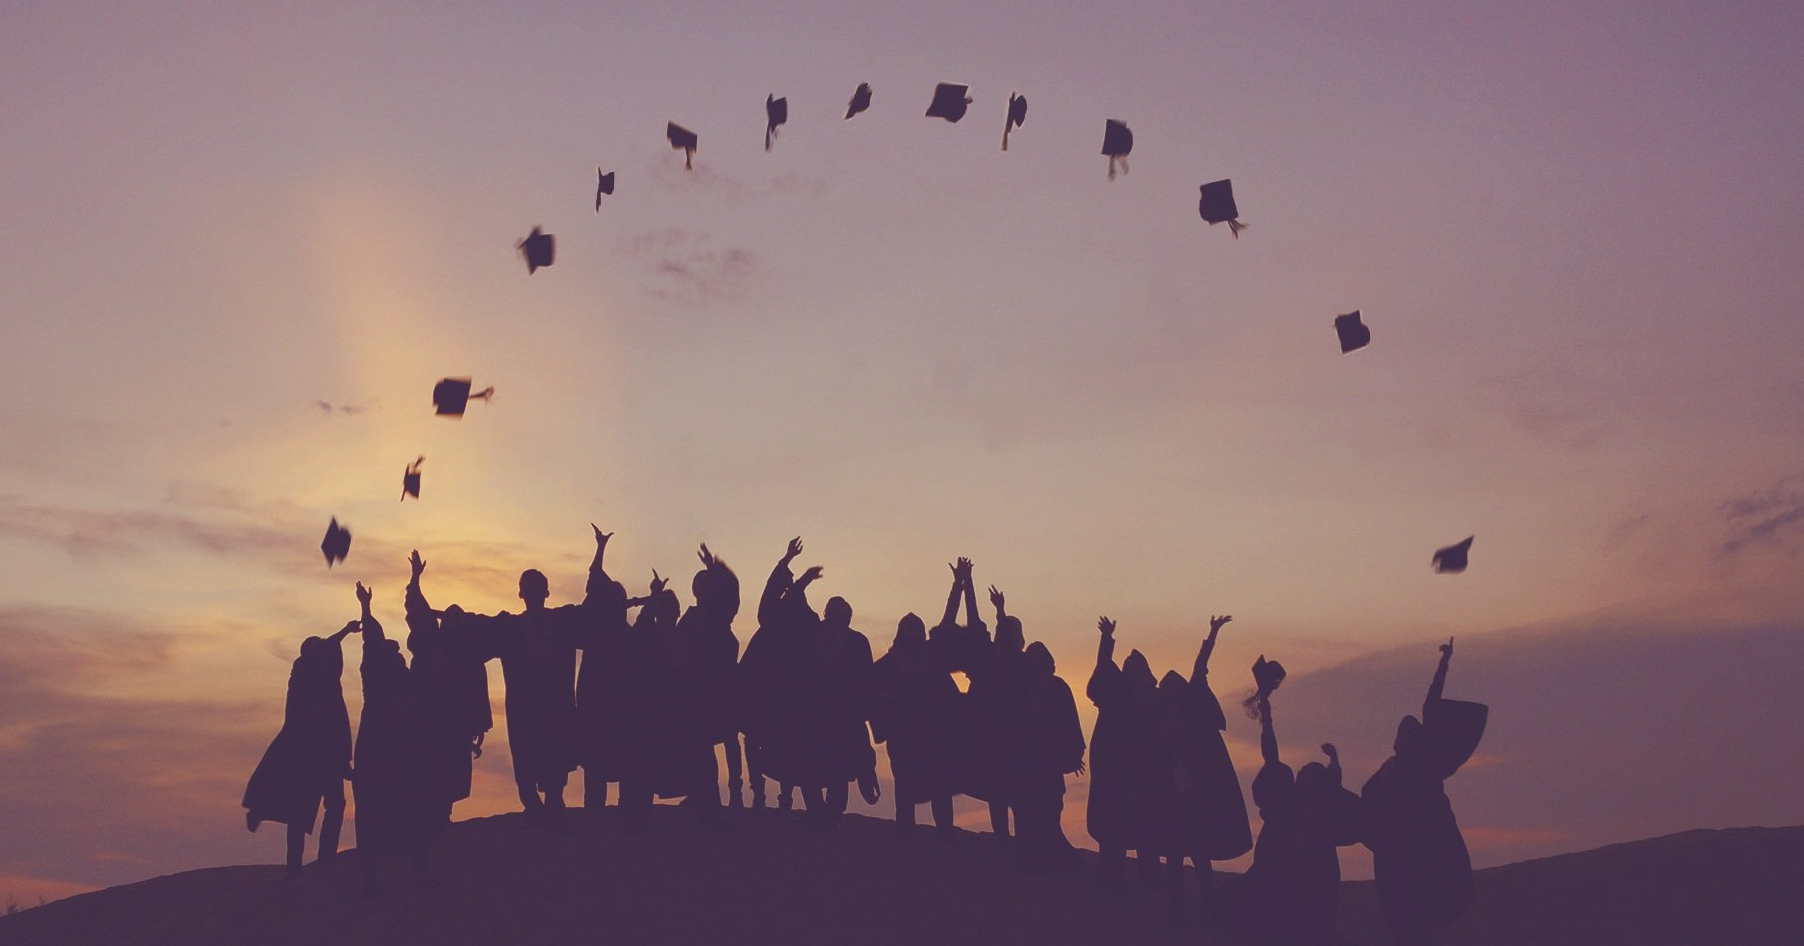 Stock photo: in early morning light, the silhouette of a group of graduates standing in a line throwing their caps into the air